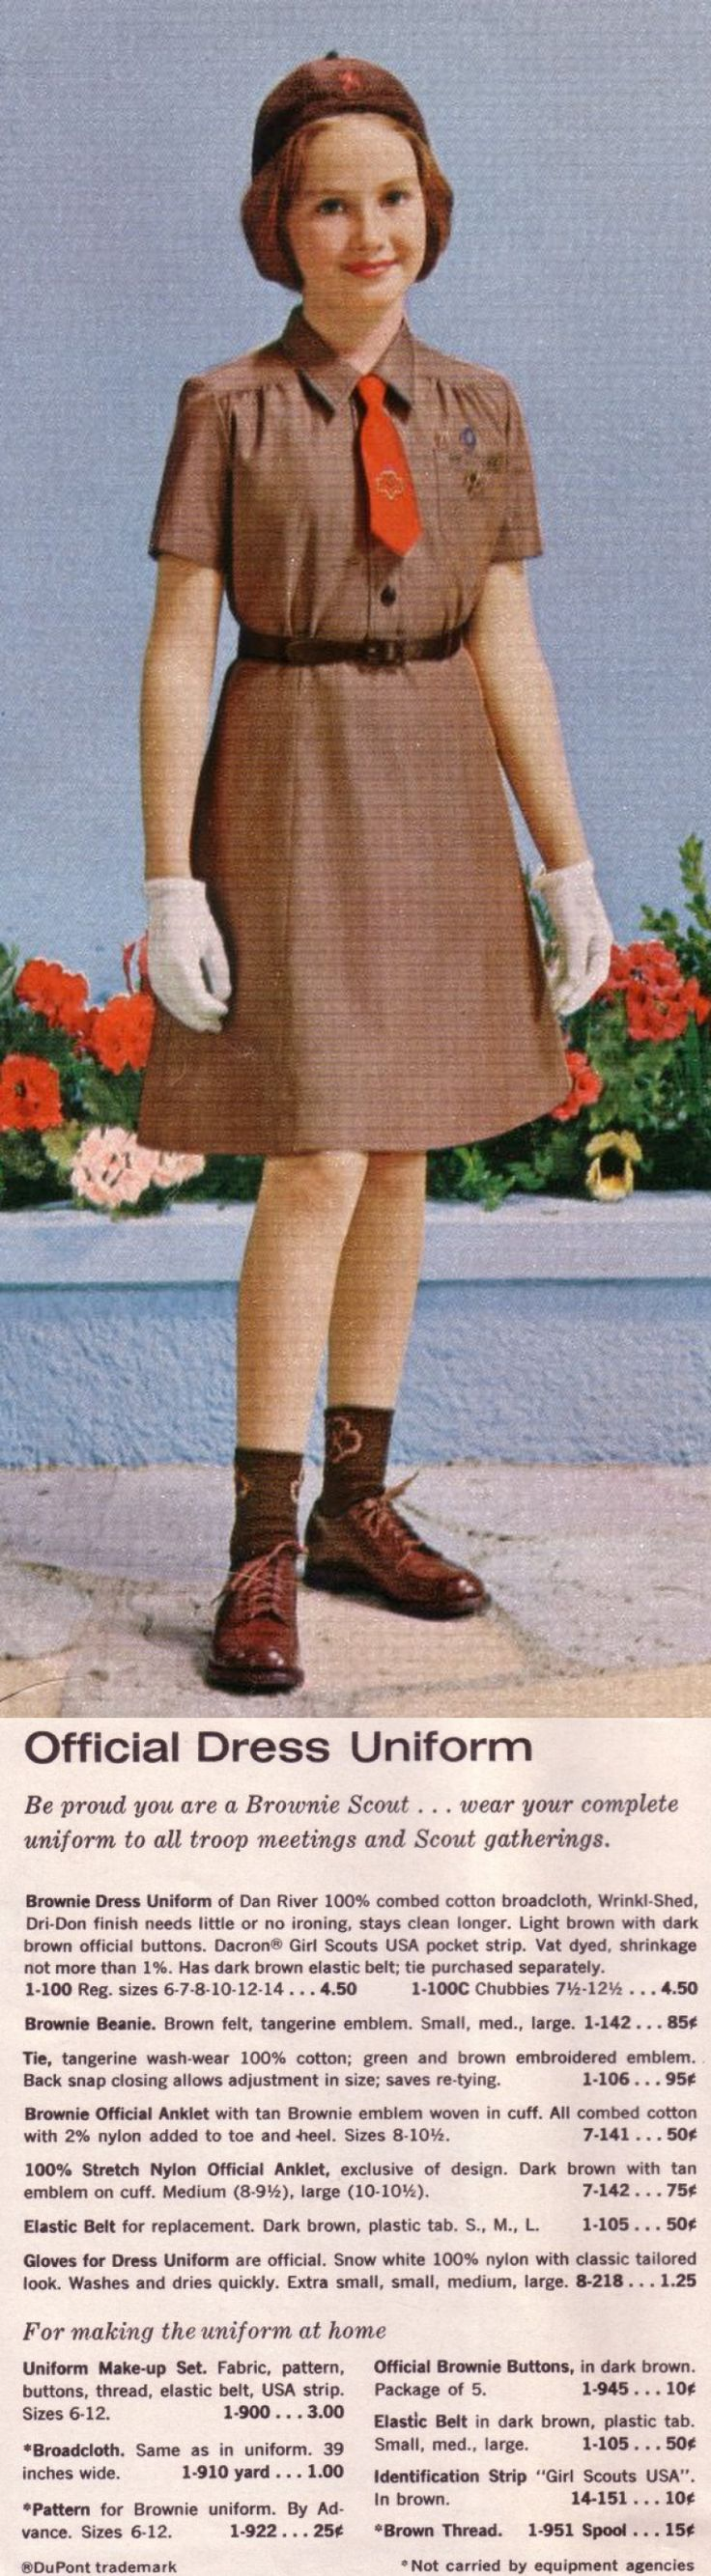 Official Dress Uniform  ... Be proud you are a Brownie Scout .... Wear your complete uniform to all troop meetings and Scout gatherings.  ~~~~~ (from the 1962 Brownie catalog)